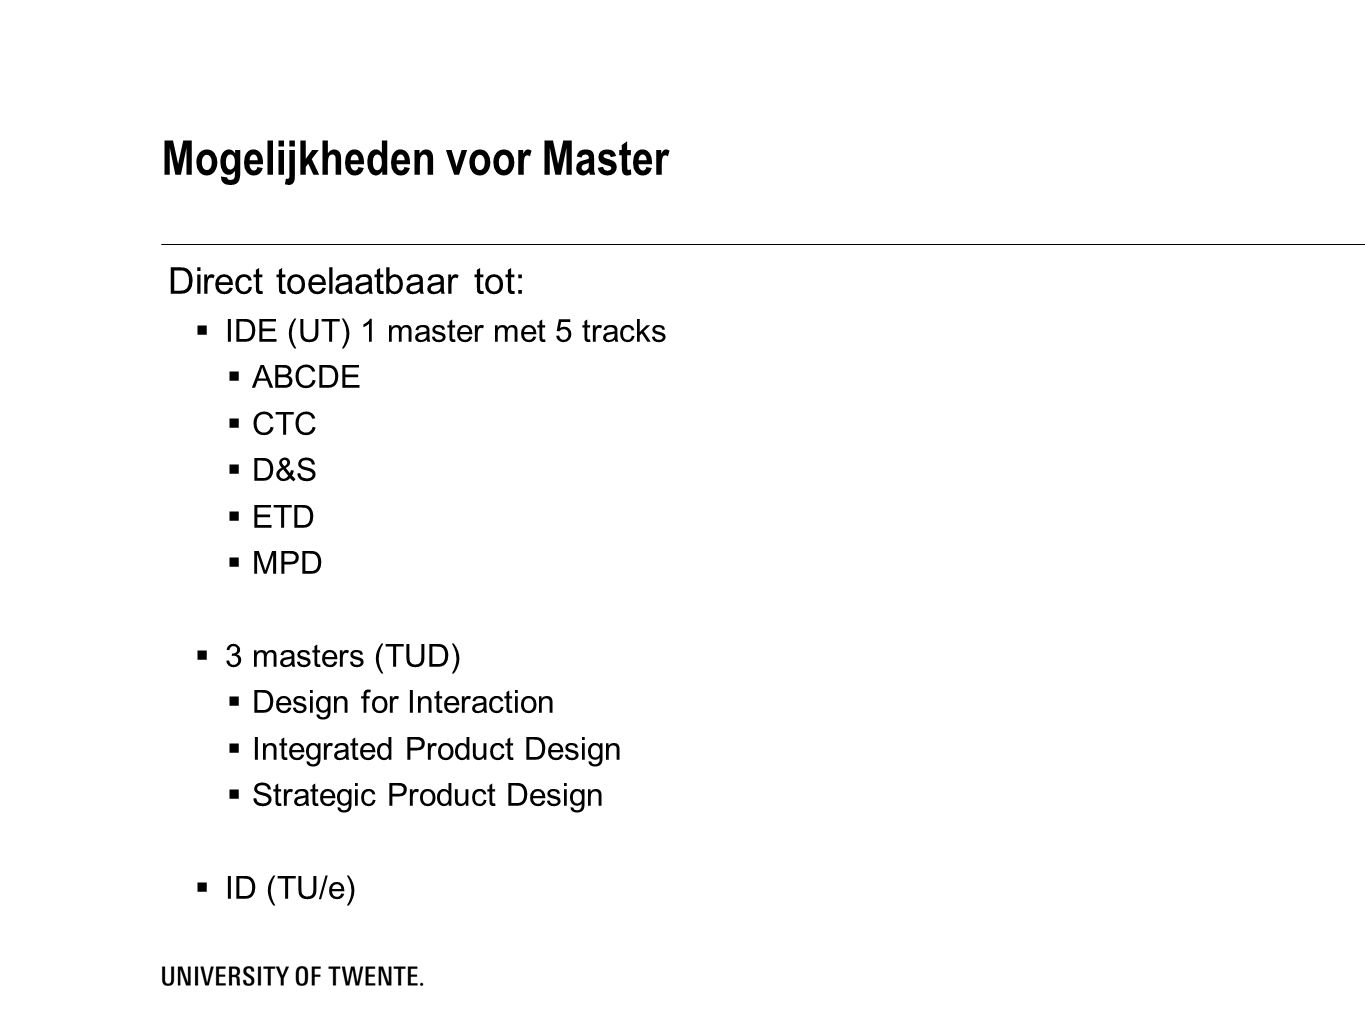 Mogelijkheden voor Master Direct toelaatbaar tot:  IDE (UT) 1 master met 5 tracks  ABCDE  CTC  D&S  ETD  MPD  3 masters (TUD)  Design for Interaction  Integrated Product Design  Strategic Product Design  ID (TU/e)